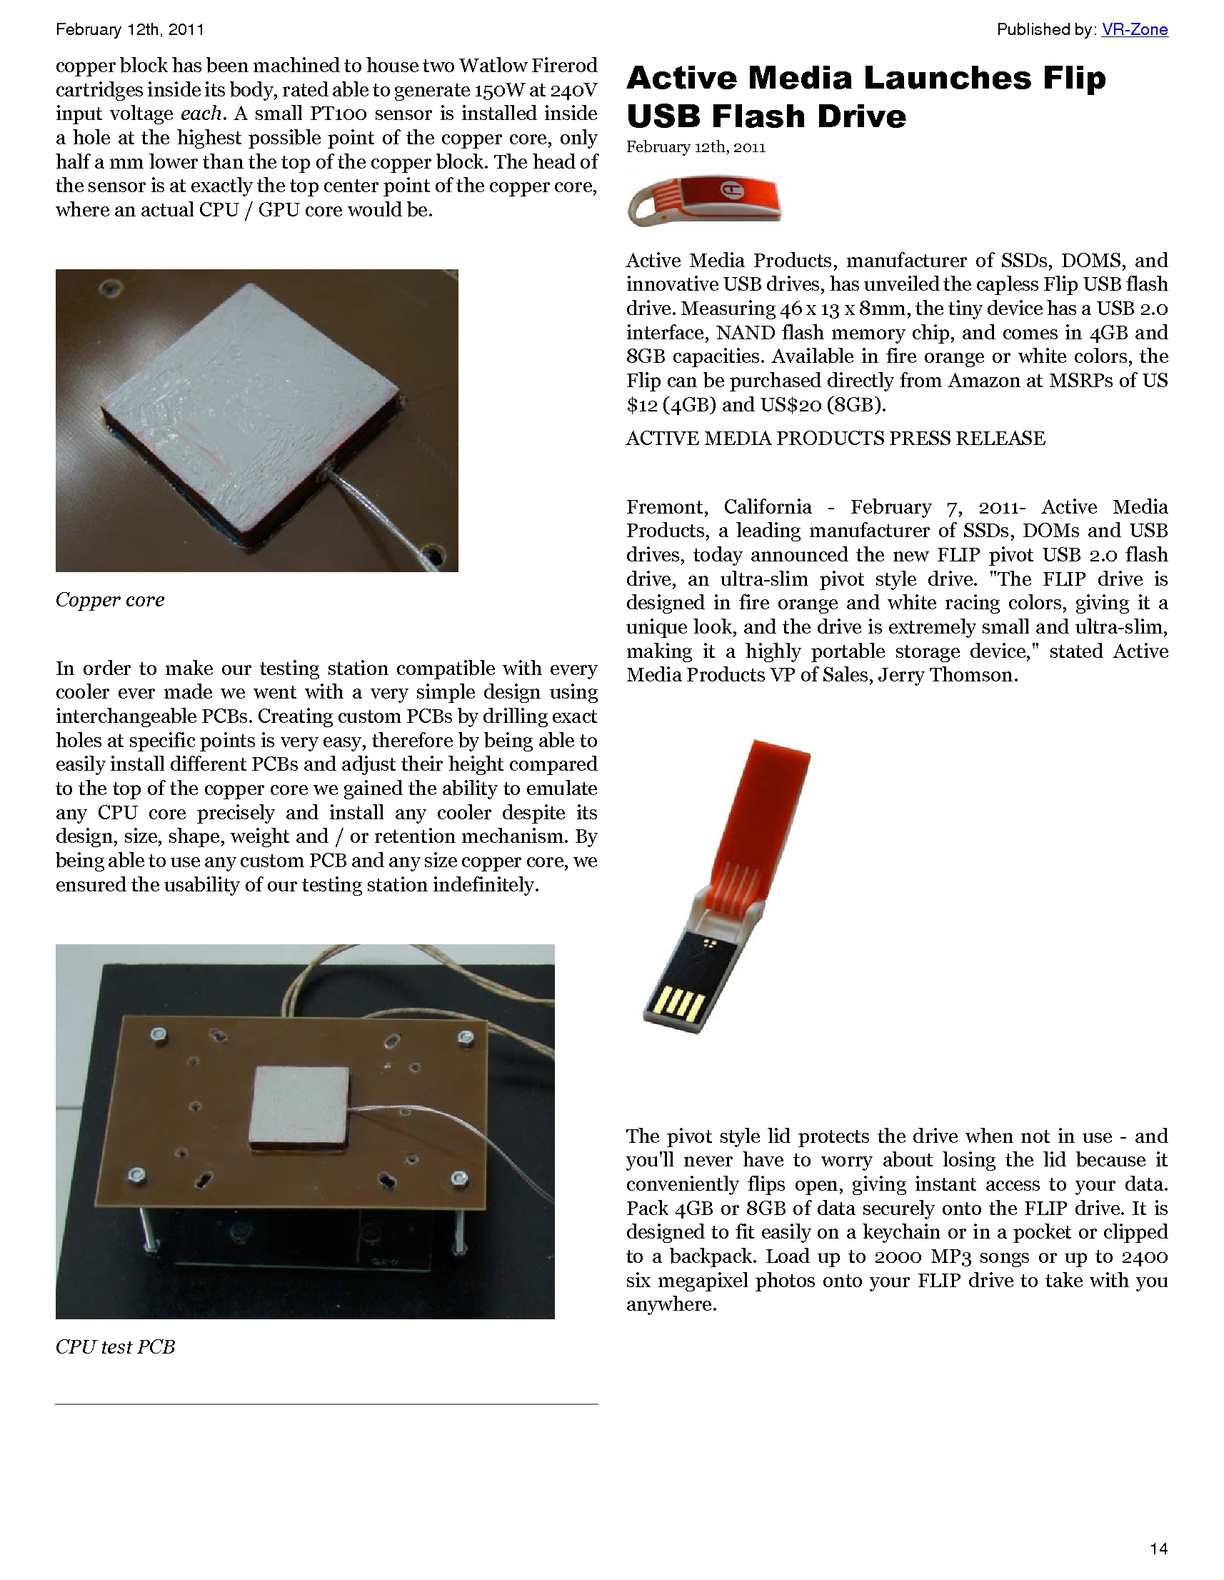 b2a1c40eb26e2 Calaméo - VR-Zone Technology News | Stuff for the Geeks! Feb 2011 Issue